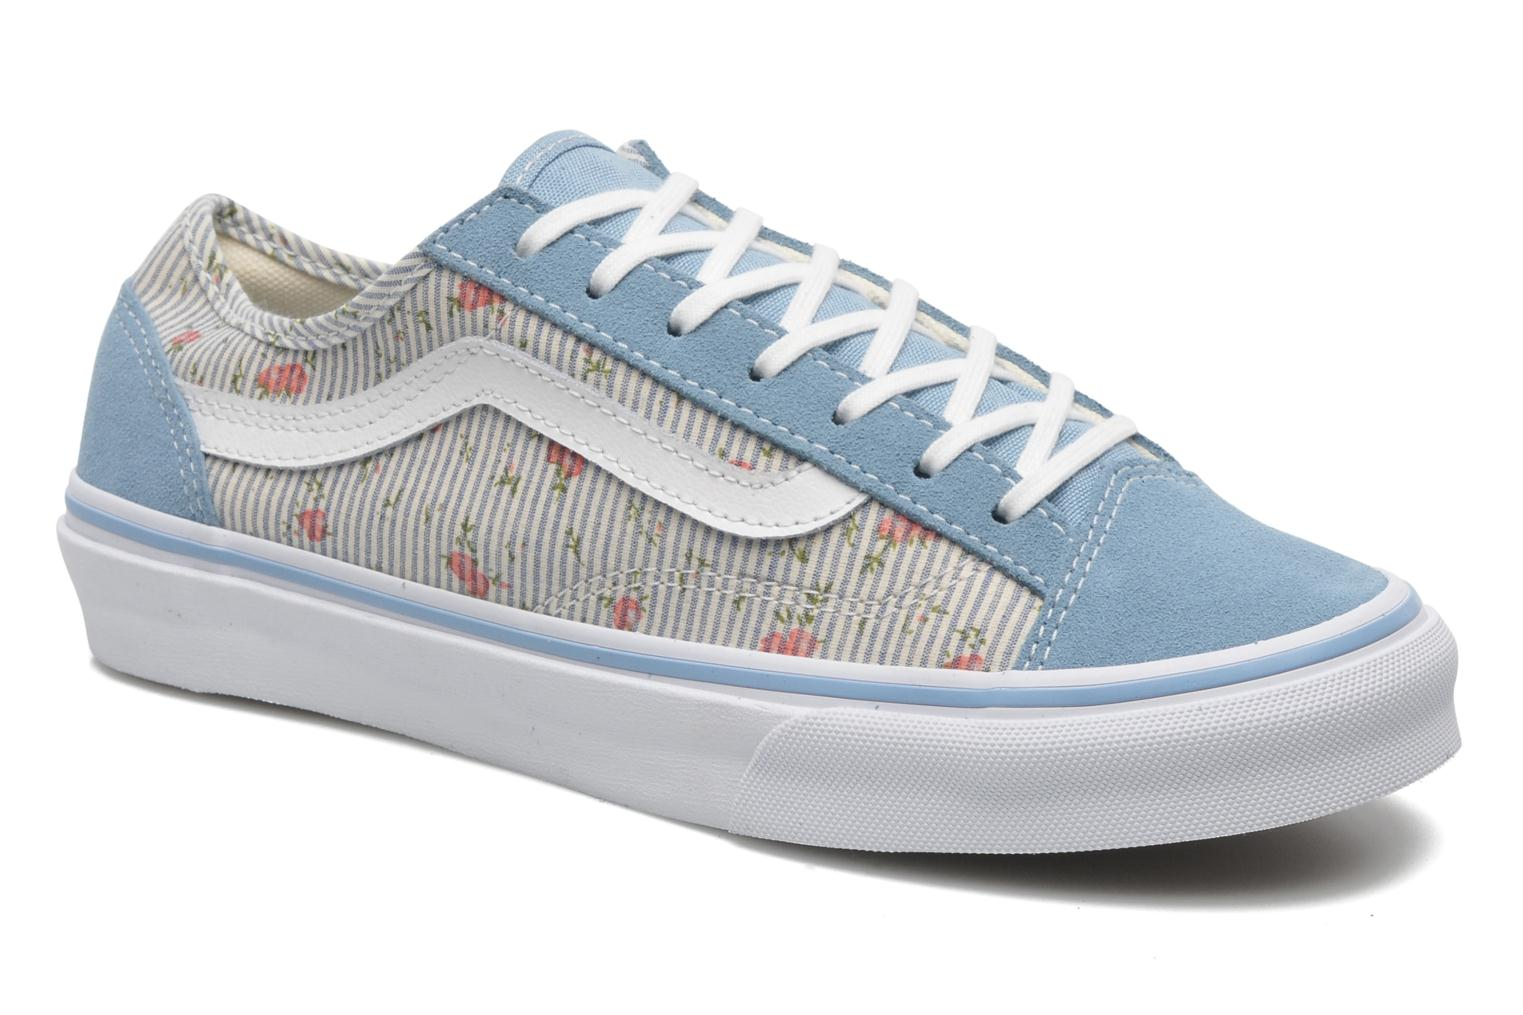 Style 36 Slim W (Floral/Stripes) Dusk Blue